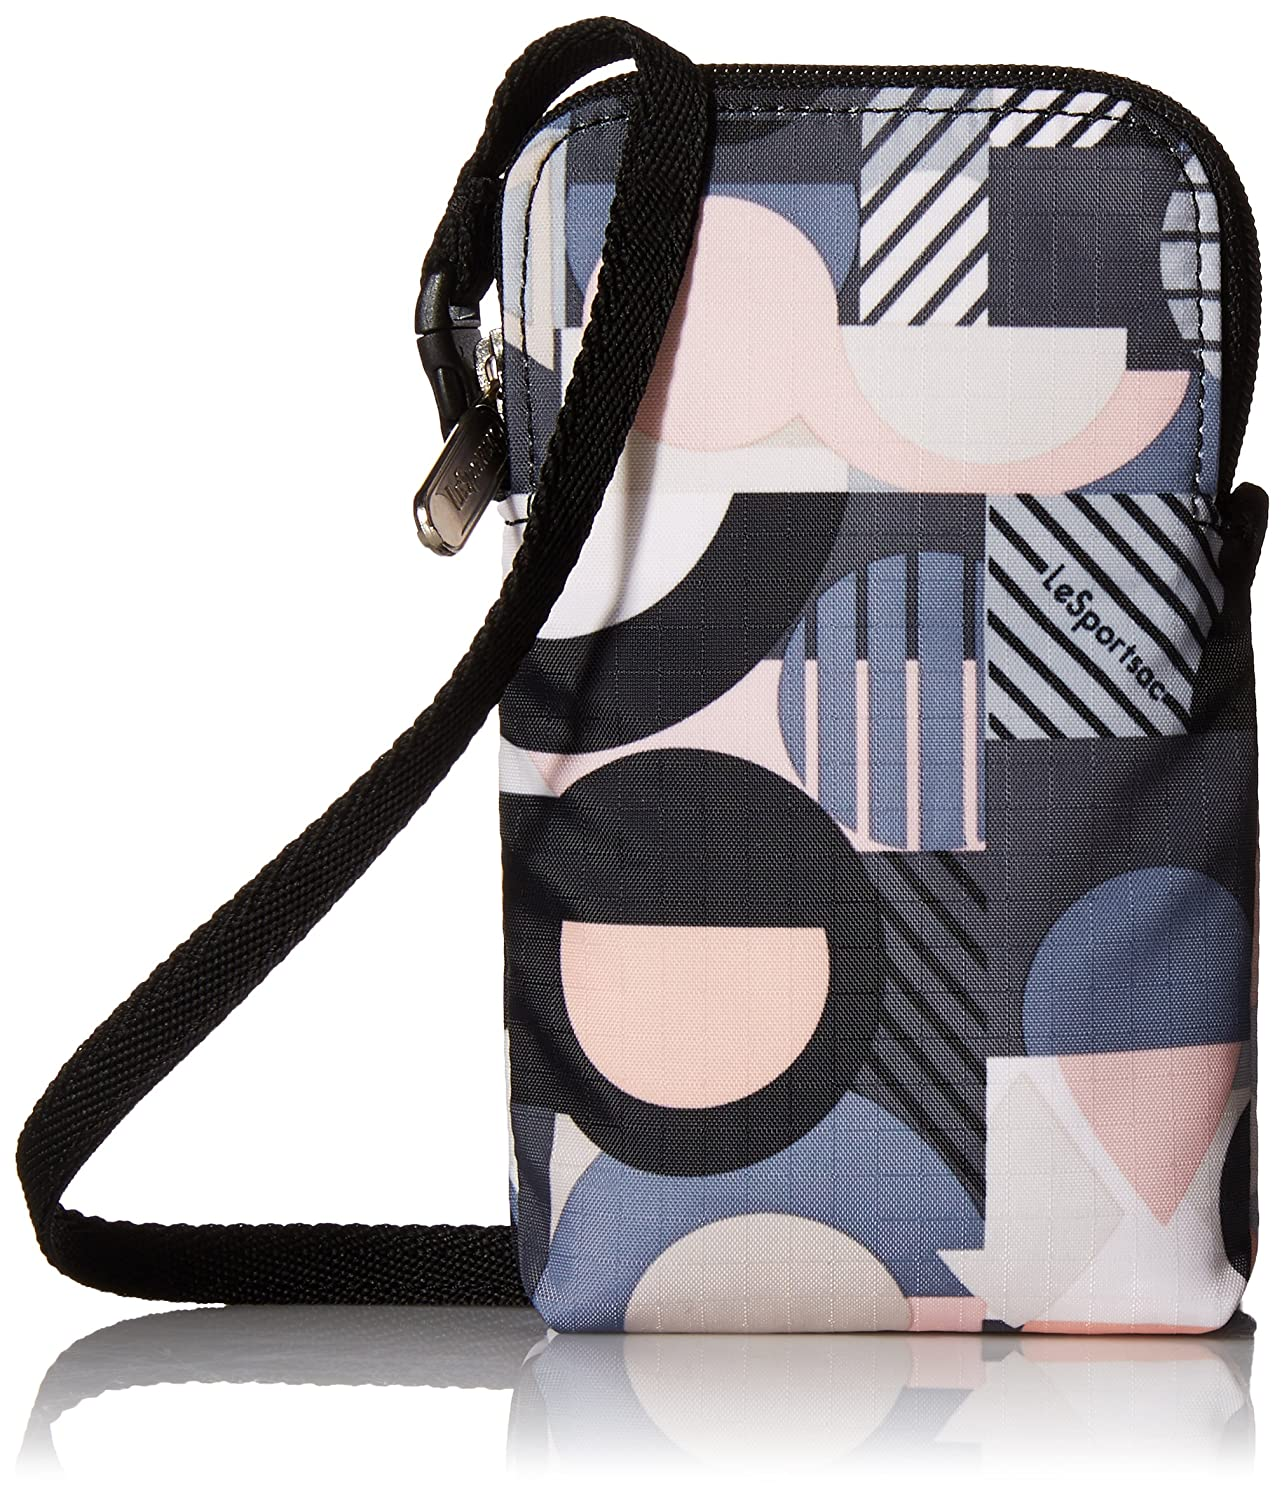 LeSportsac Smart Phone Carrier Cell Phone Case